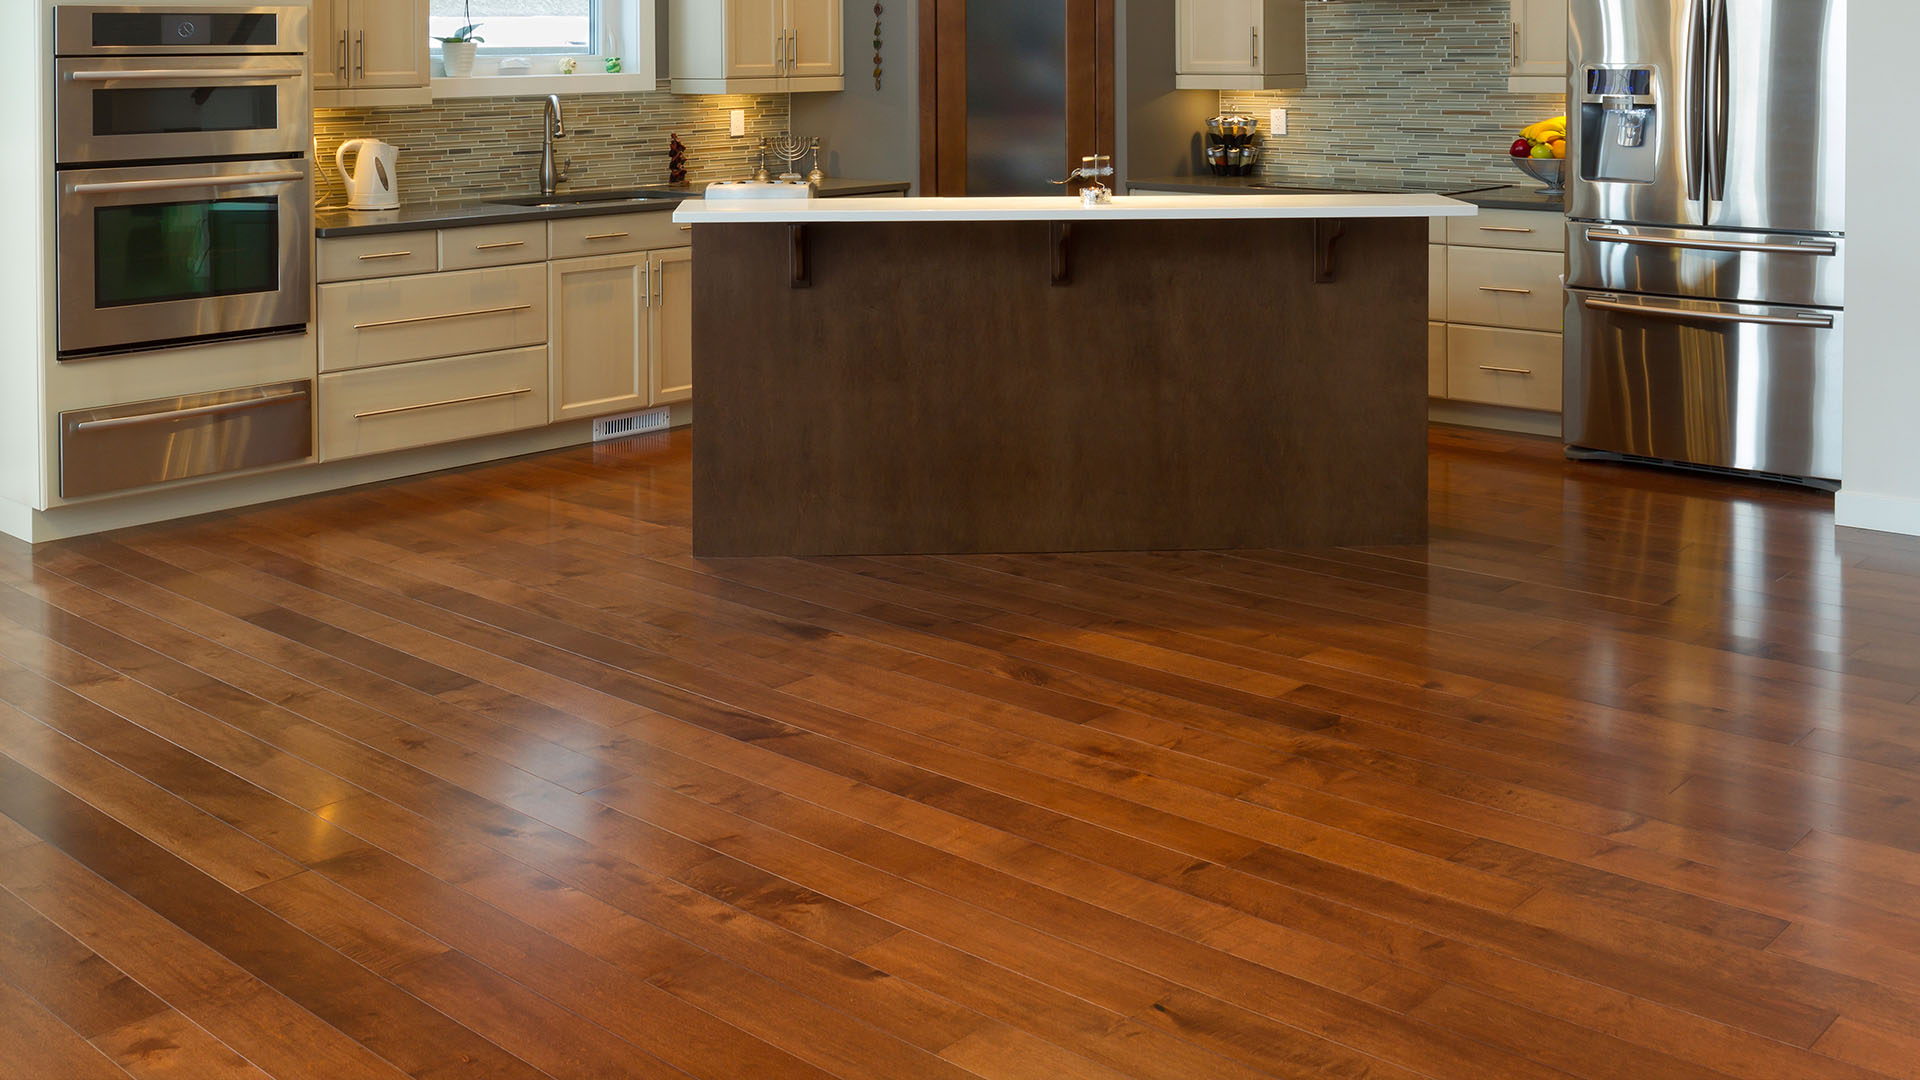 Anchorage Kitchen Remodeling